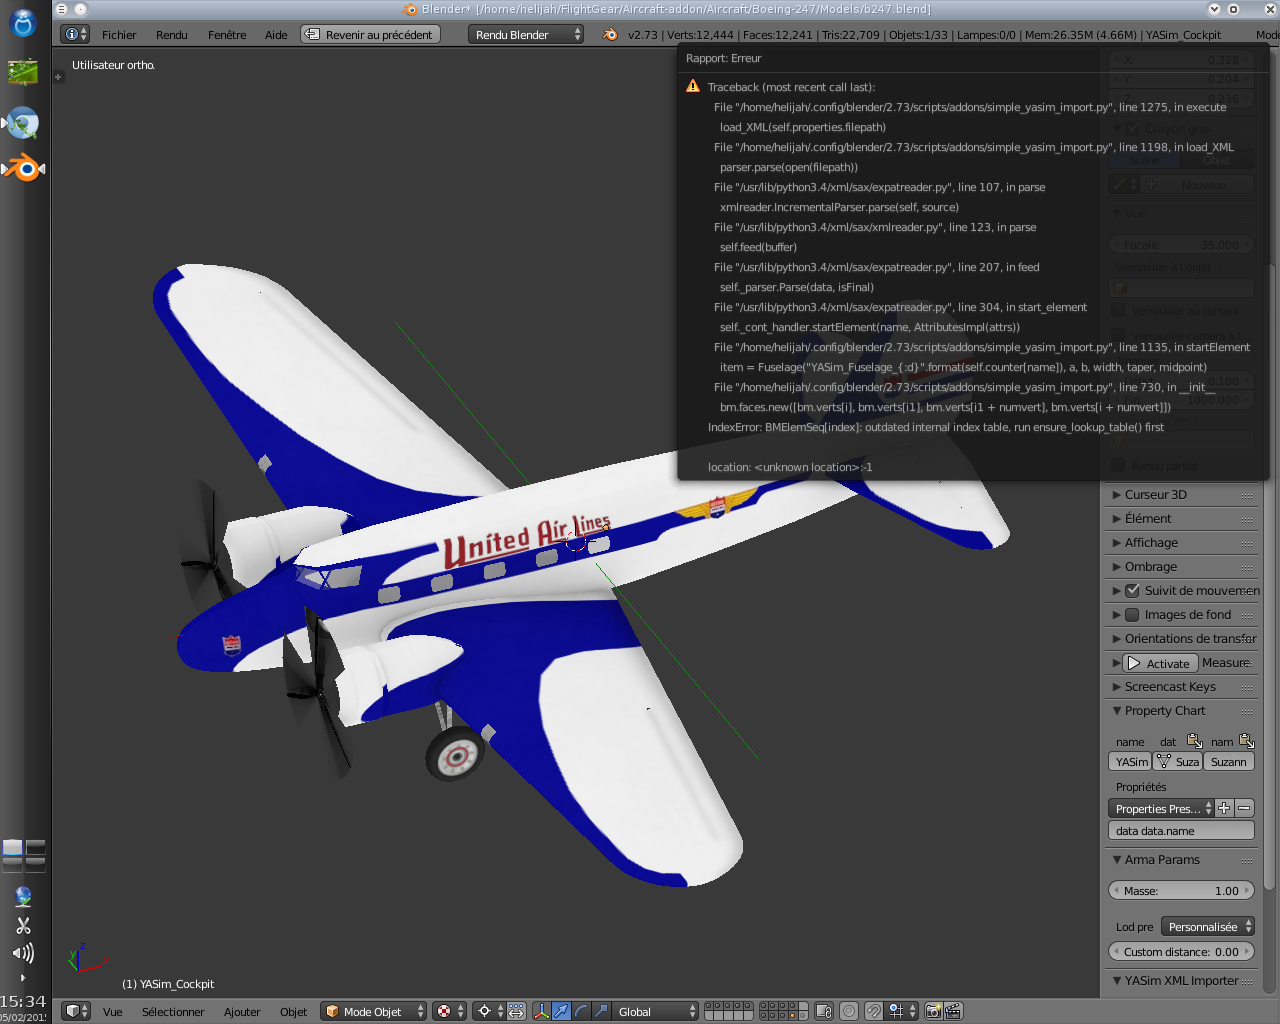 FlightGear forum • View topic - YASim Importer for Blender